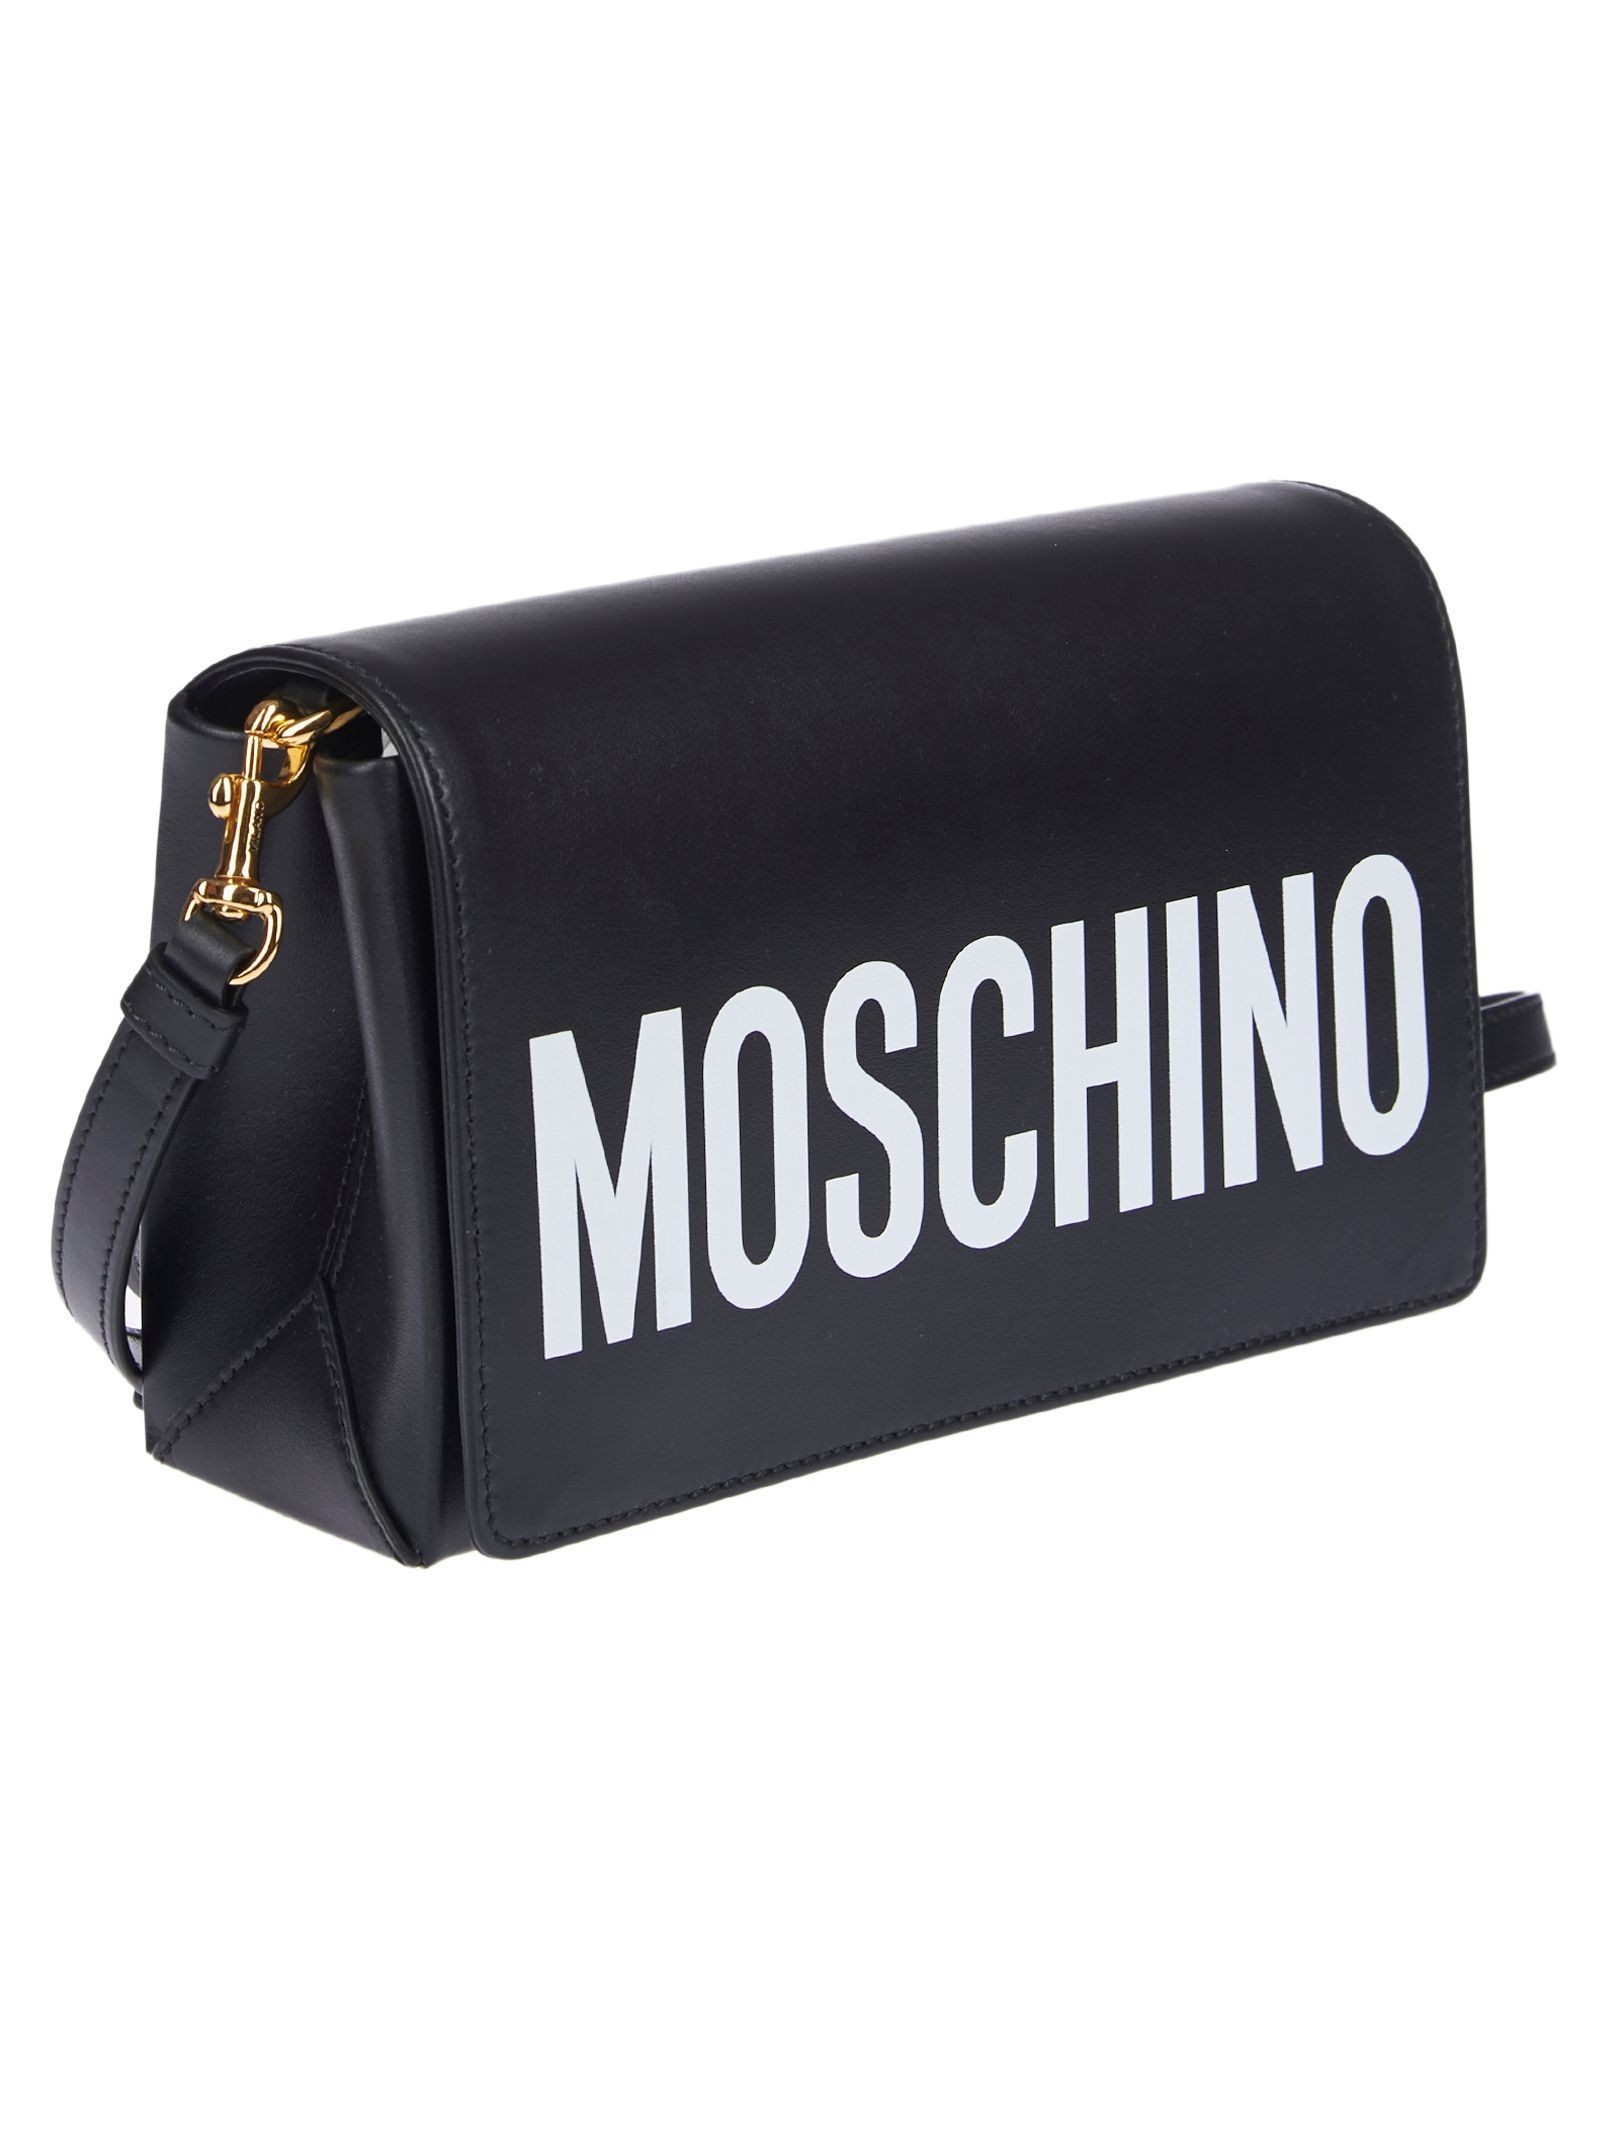 MOSCHINO WOMEN'S A742380011555 BLACK LEATHER SHOULDER BAG